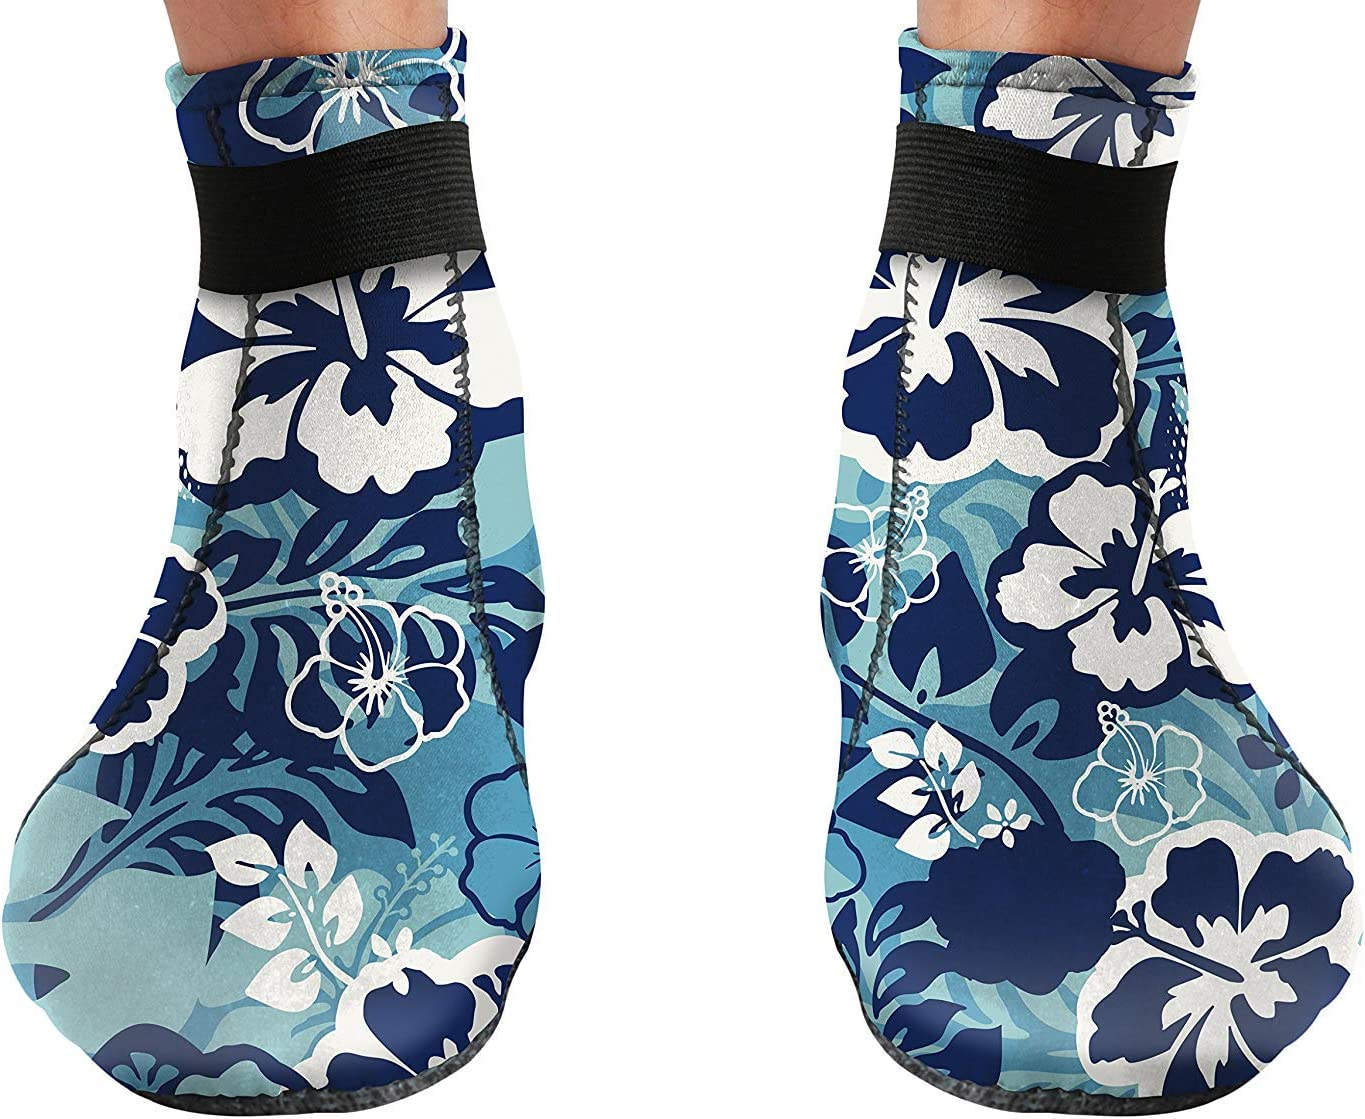 3mm Neoprene Glued and Blind Stitched w//Fit Adjustment Straps for Snorkeling Low Cut - Unisex BPS Storm Smart Sock Ultra Premium Water Fin Sock Tide-Pooling and All Water and Sand Activities